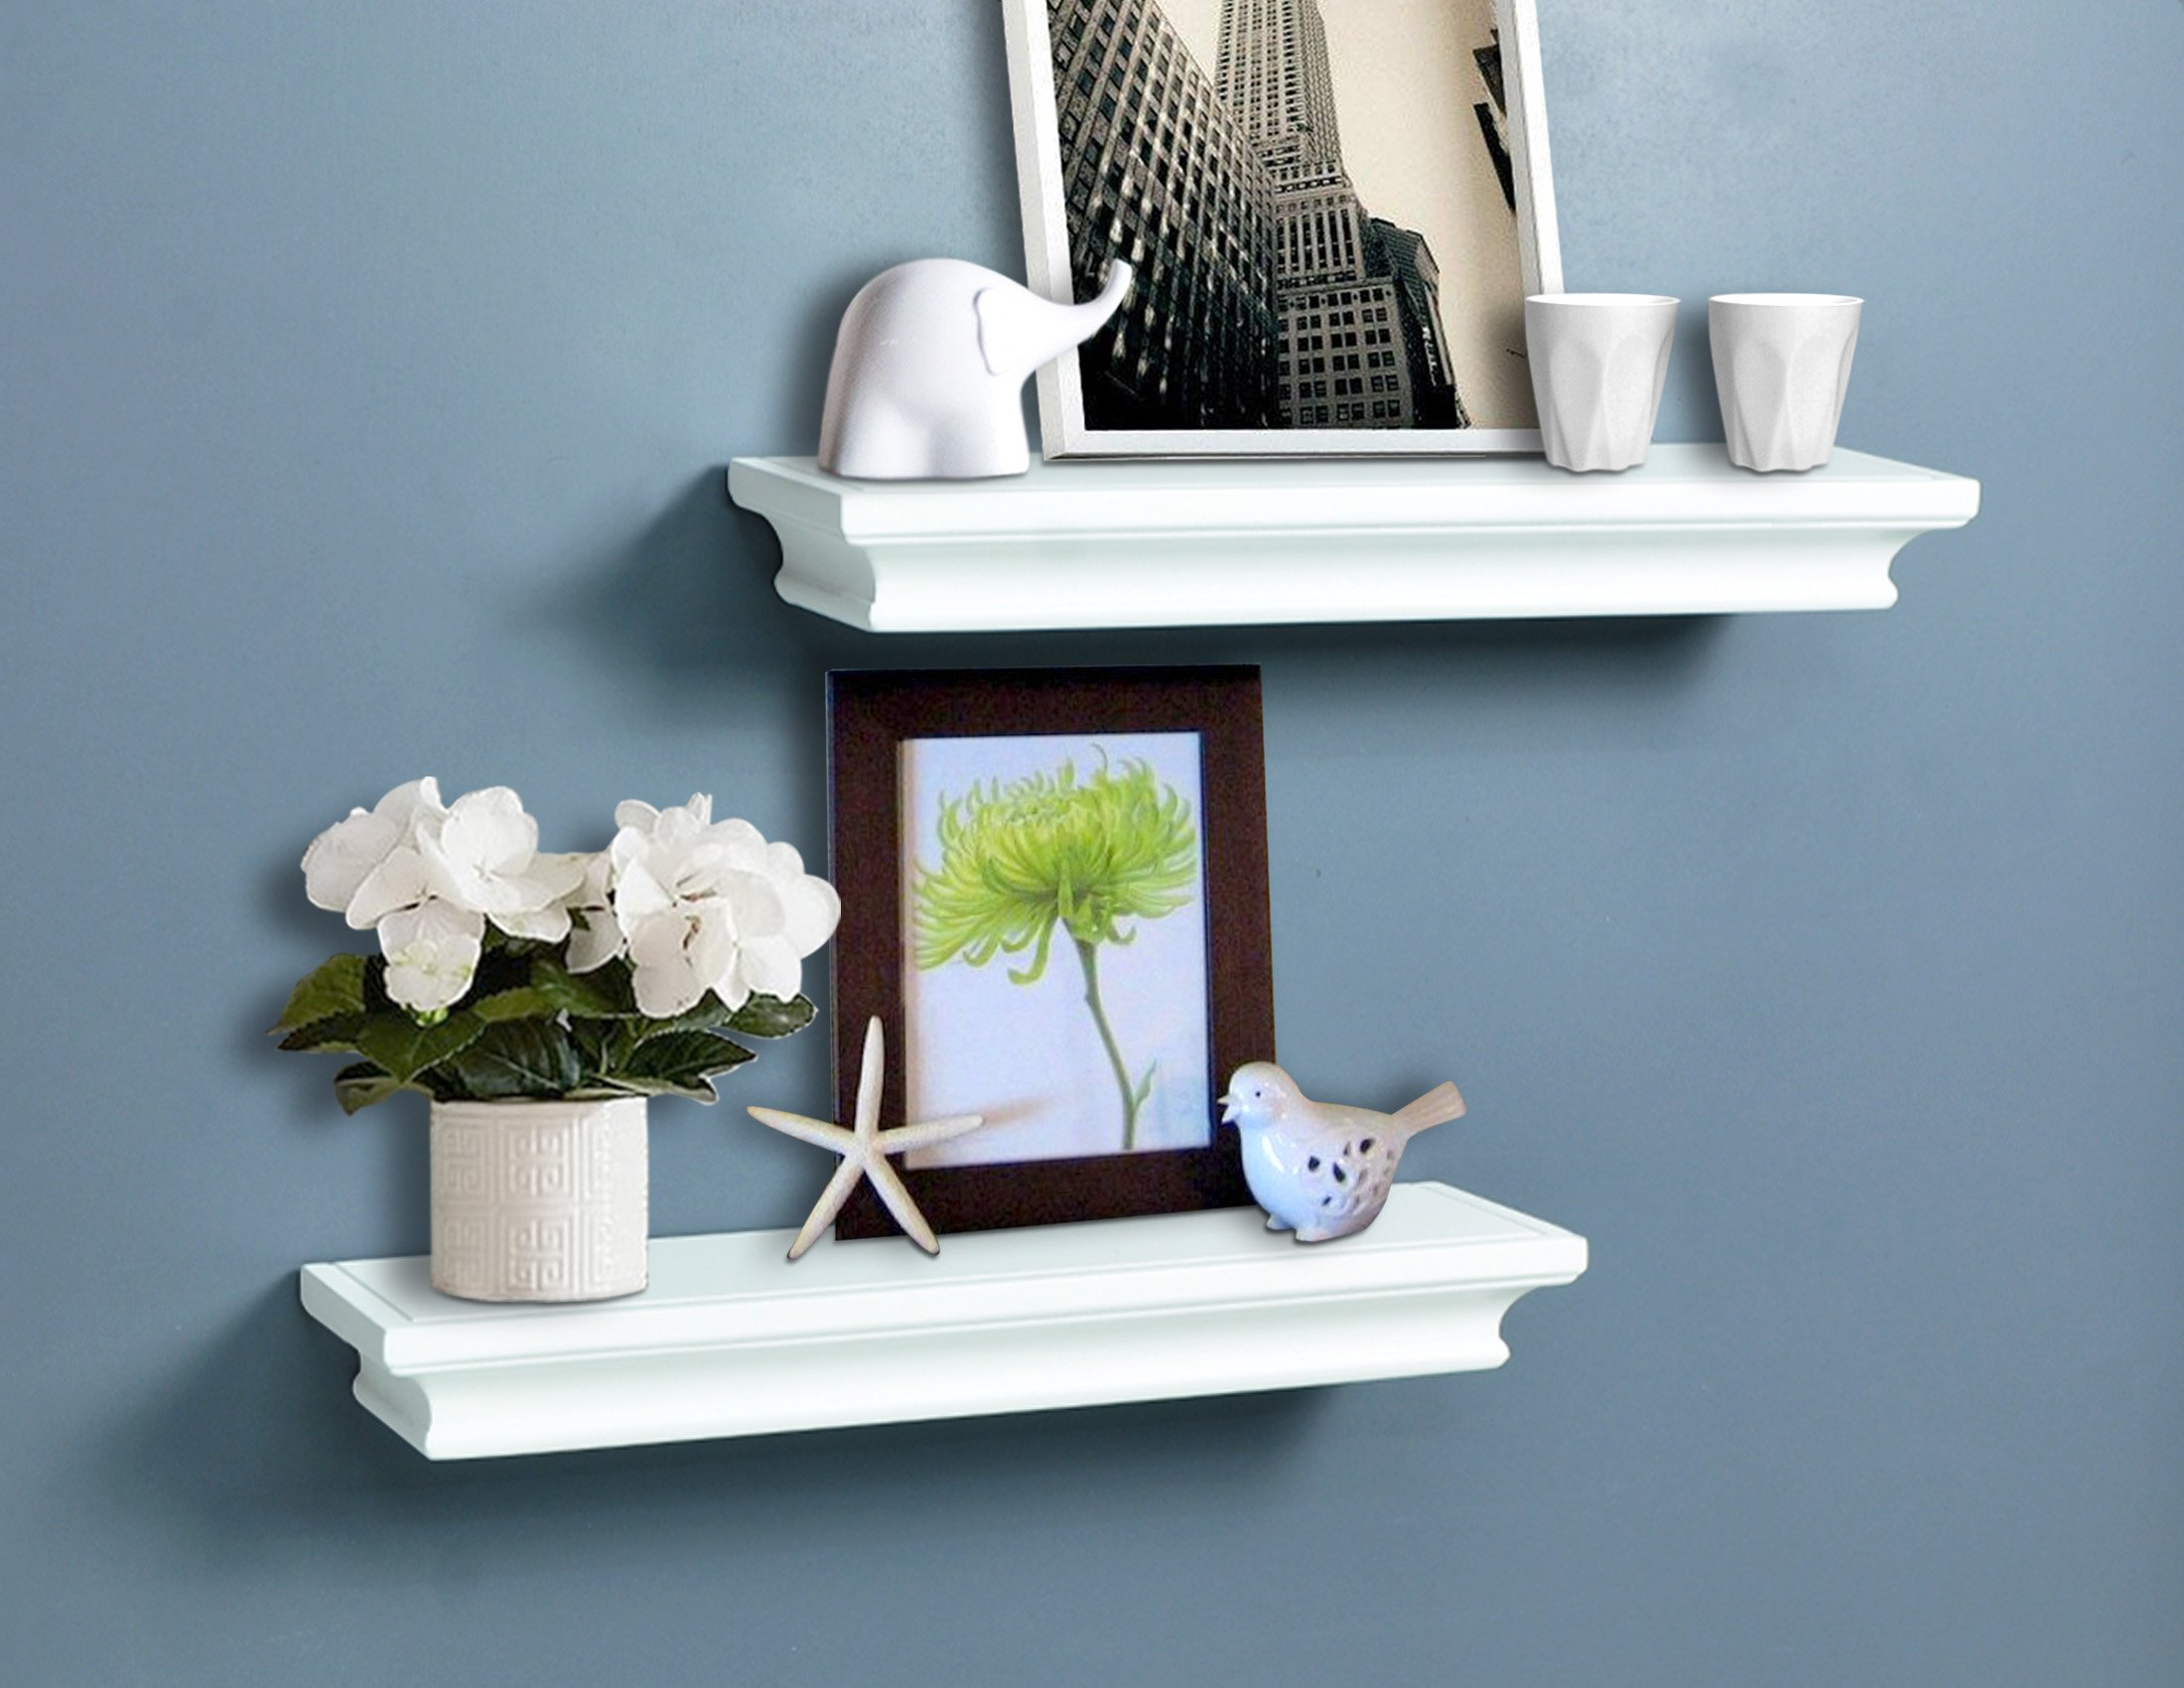 AHDECOR Floating Shelves Ledge Shelf White (4 Inches Deep, Set of 2 pcs) by AHDECOR